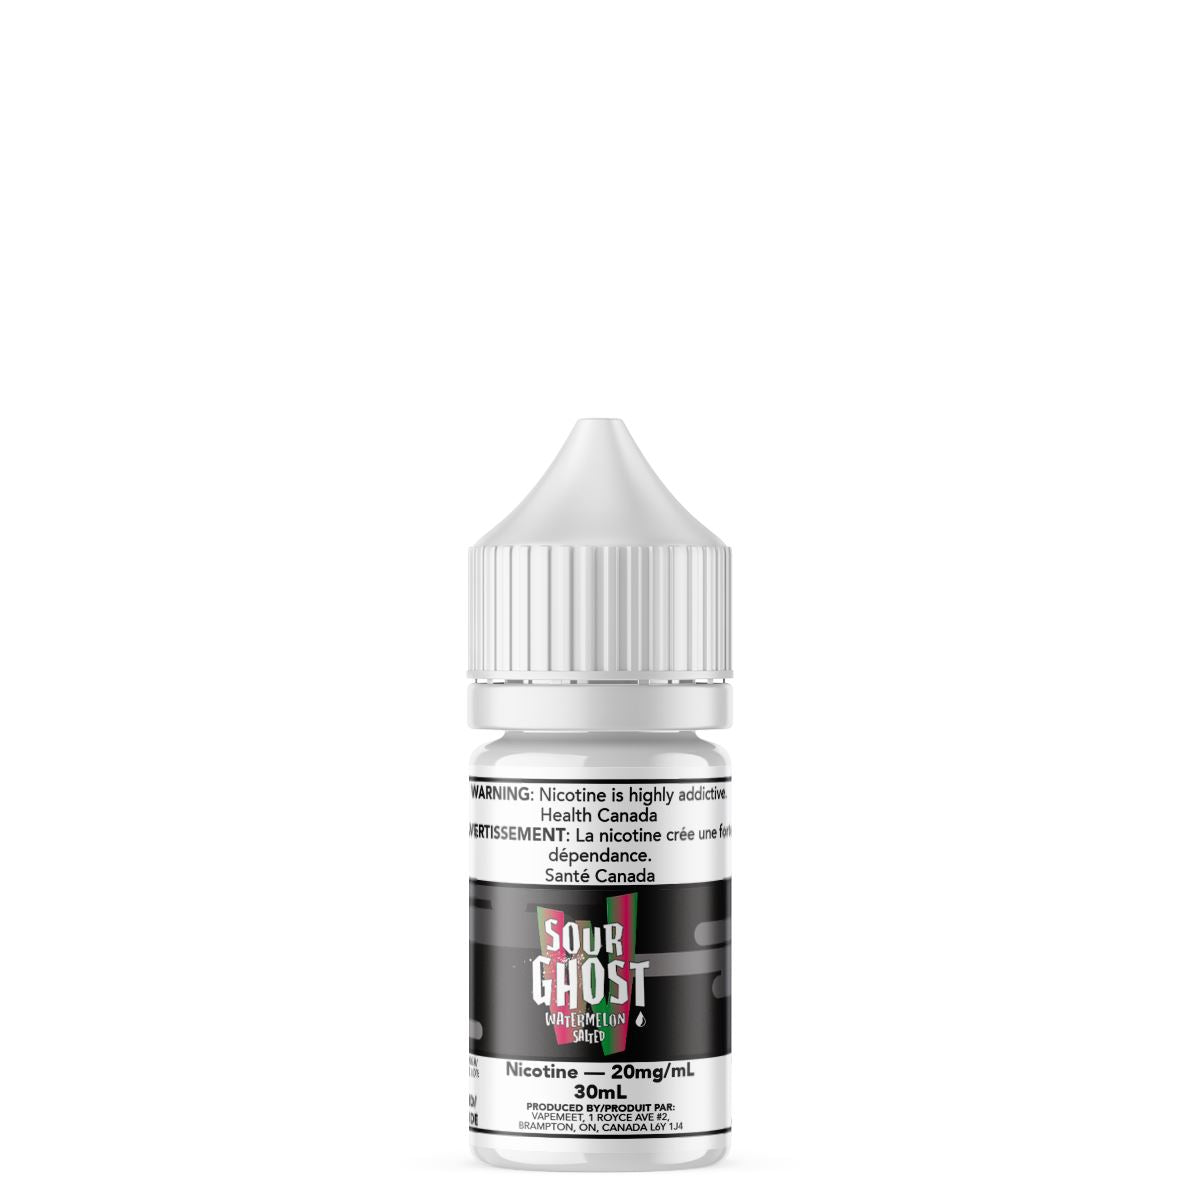 Ghosted Salted - Sour Ghost Watermelon E-Liquid Ghosted Salted 30mL 20 mg/mL